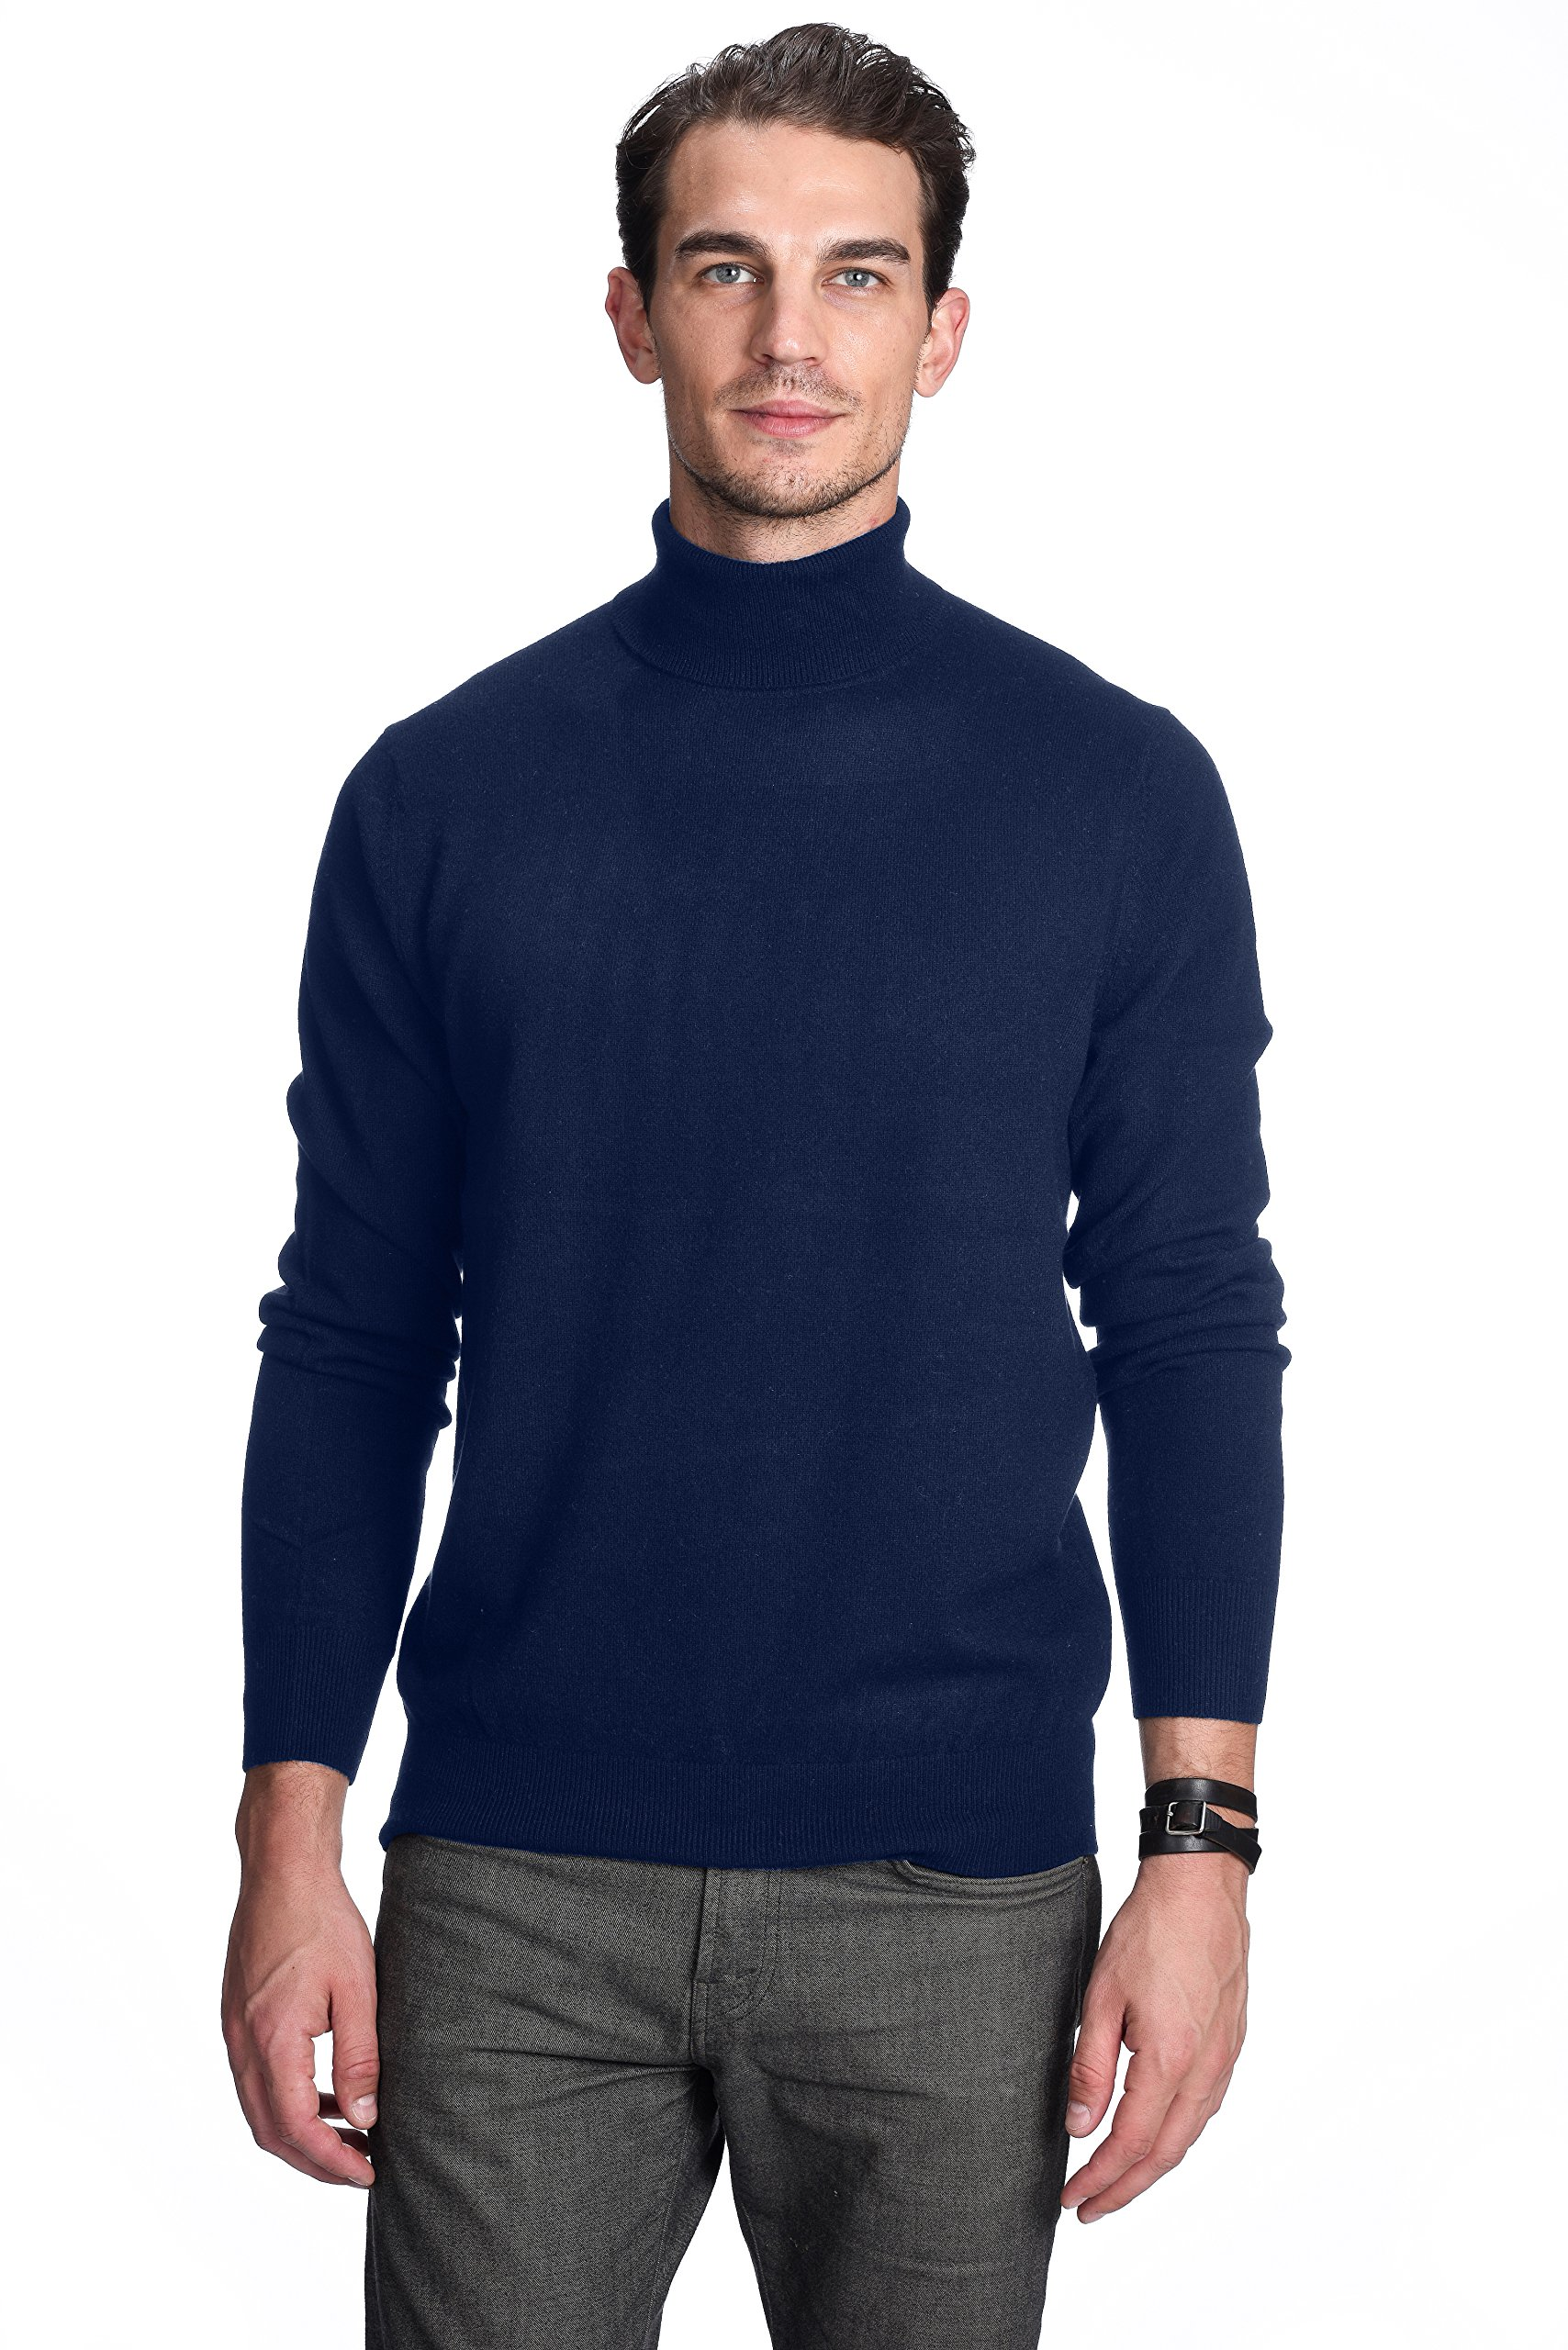 State Cashmere Men's 100% Pure Cashmere Turtleneck Long Sleeve Pullover Sweater